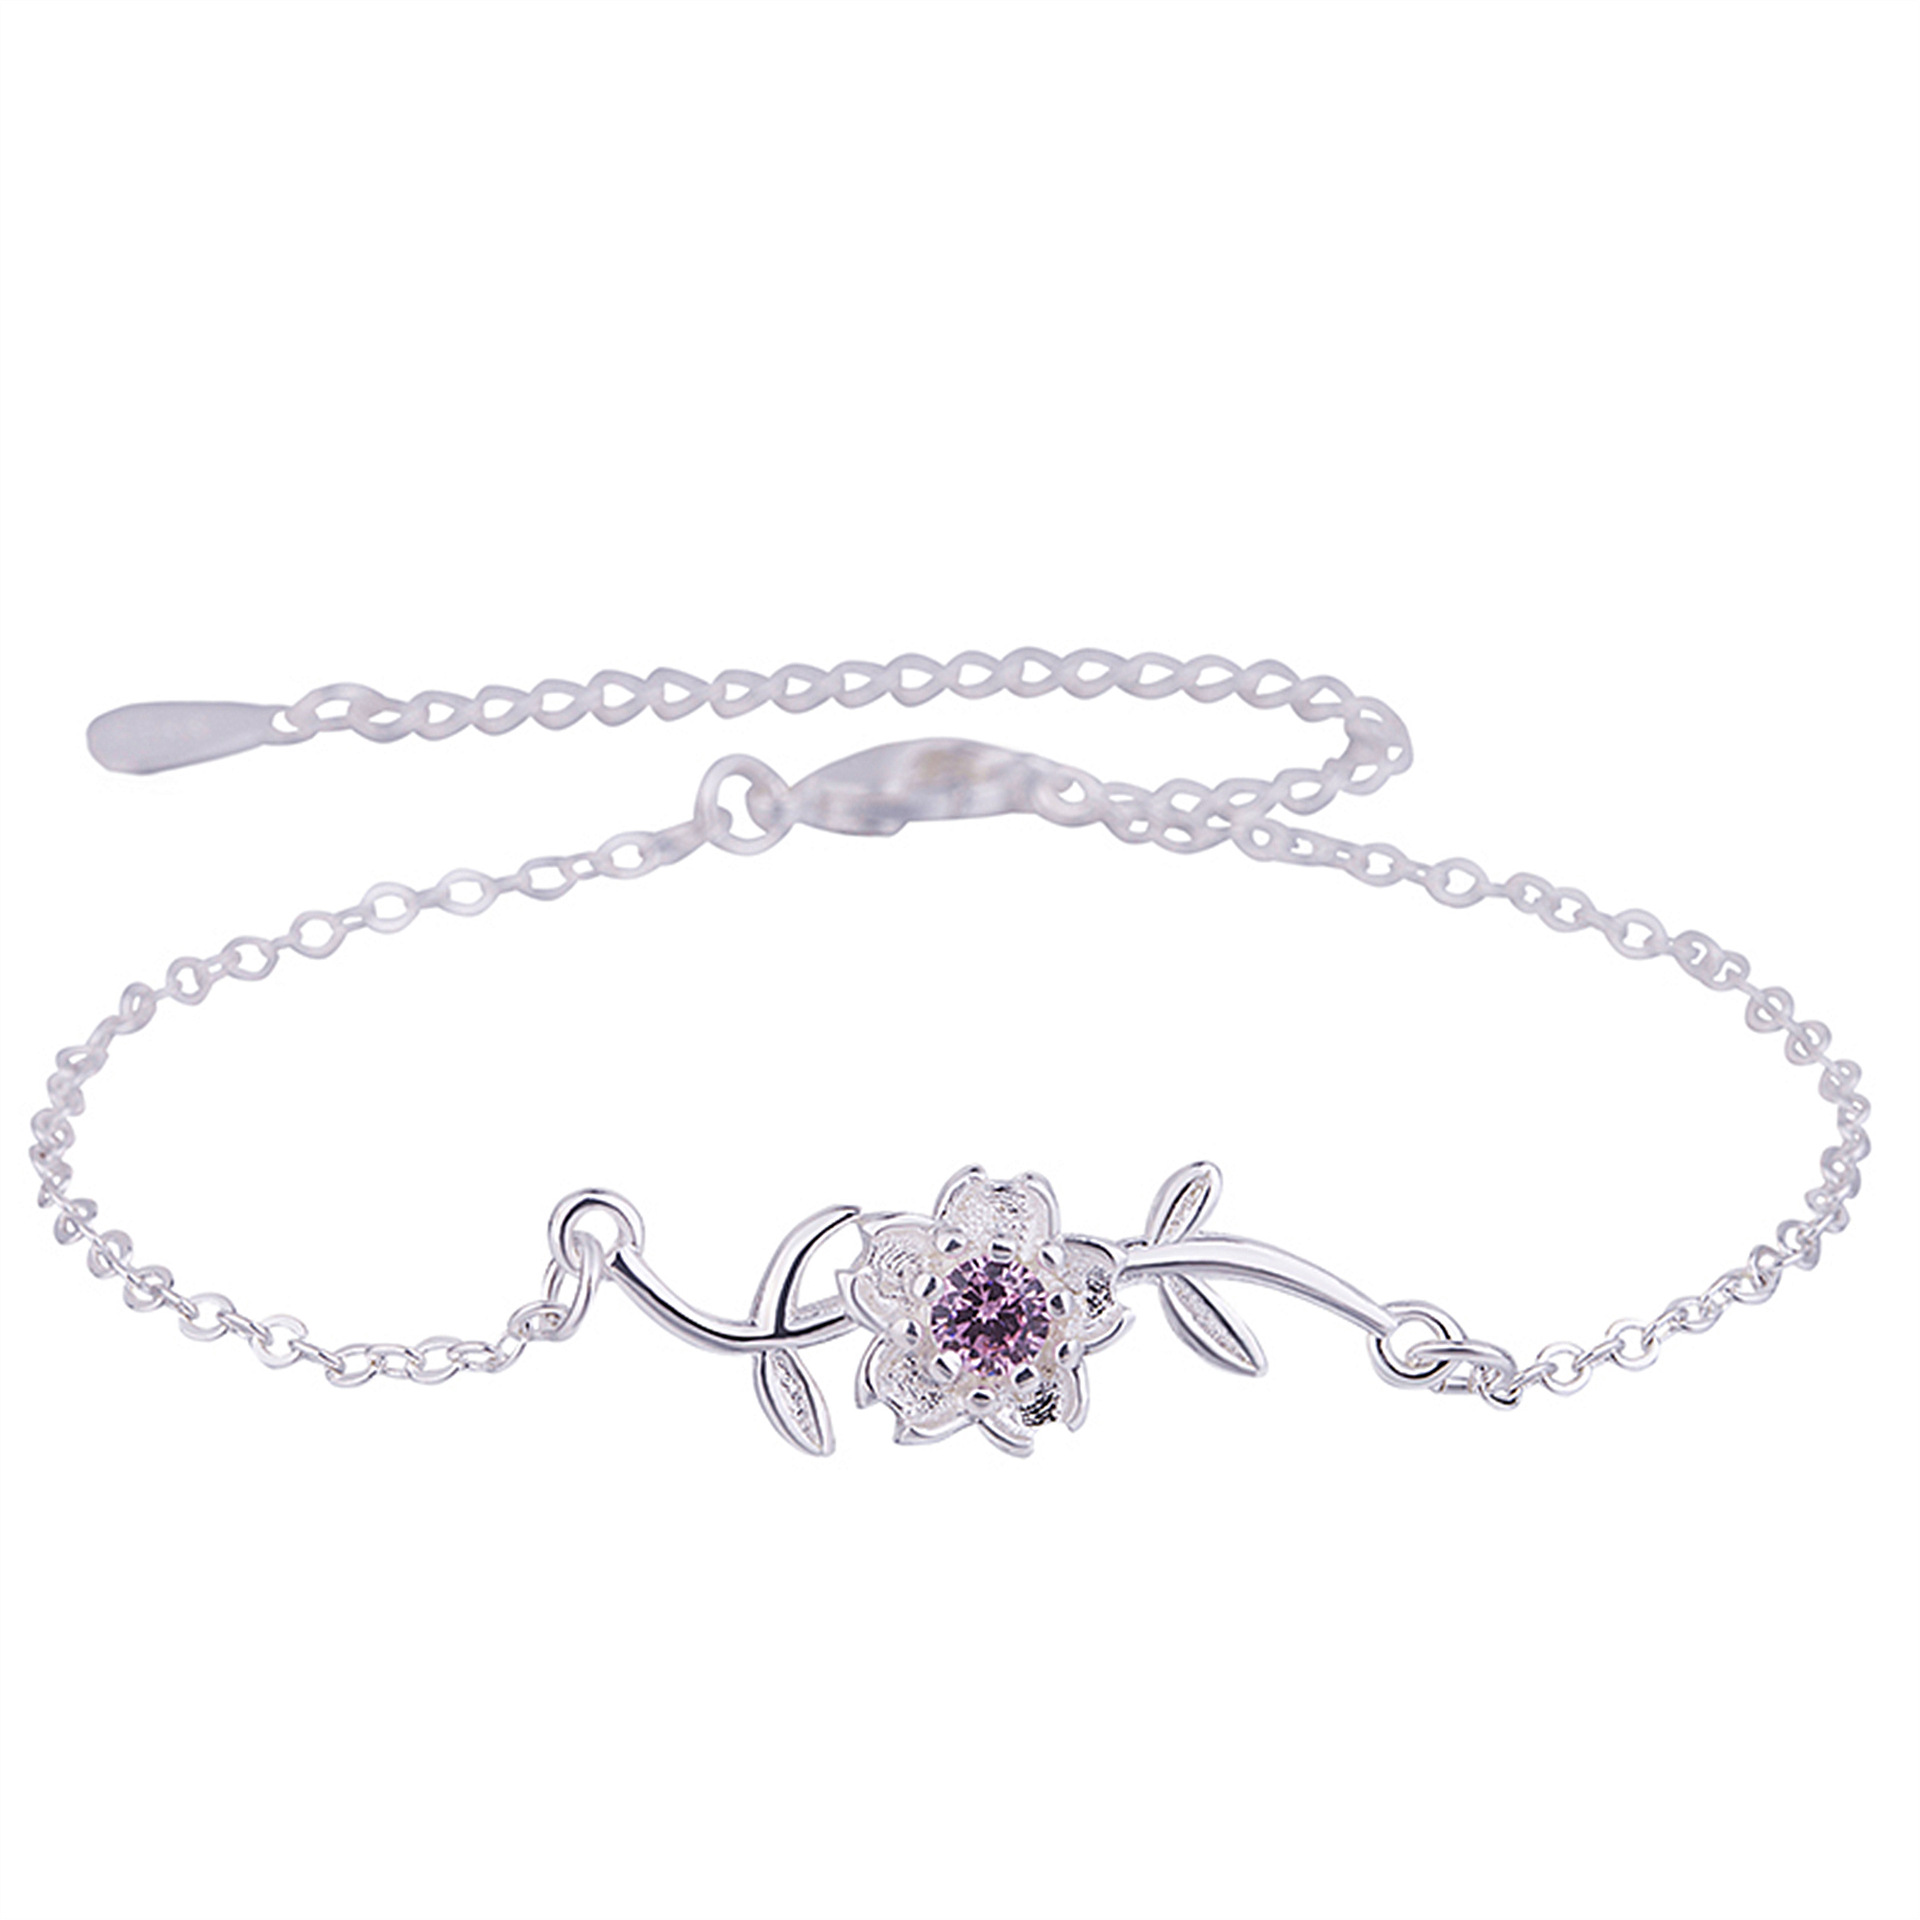 100% 925 Silver Cherry Blossom Bracelet Charm Sakura Flower Chain Bracelet For Girl Women Gift 925 Sterling Summer Jewelry 10770100% 925 Silver Cherry Blossom Bracelet Charm Sakura Flower Chain Bracelet For Girl Women Gift 925 Sterling Summer Jewelry 10770